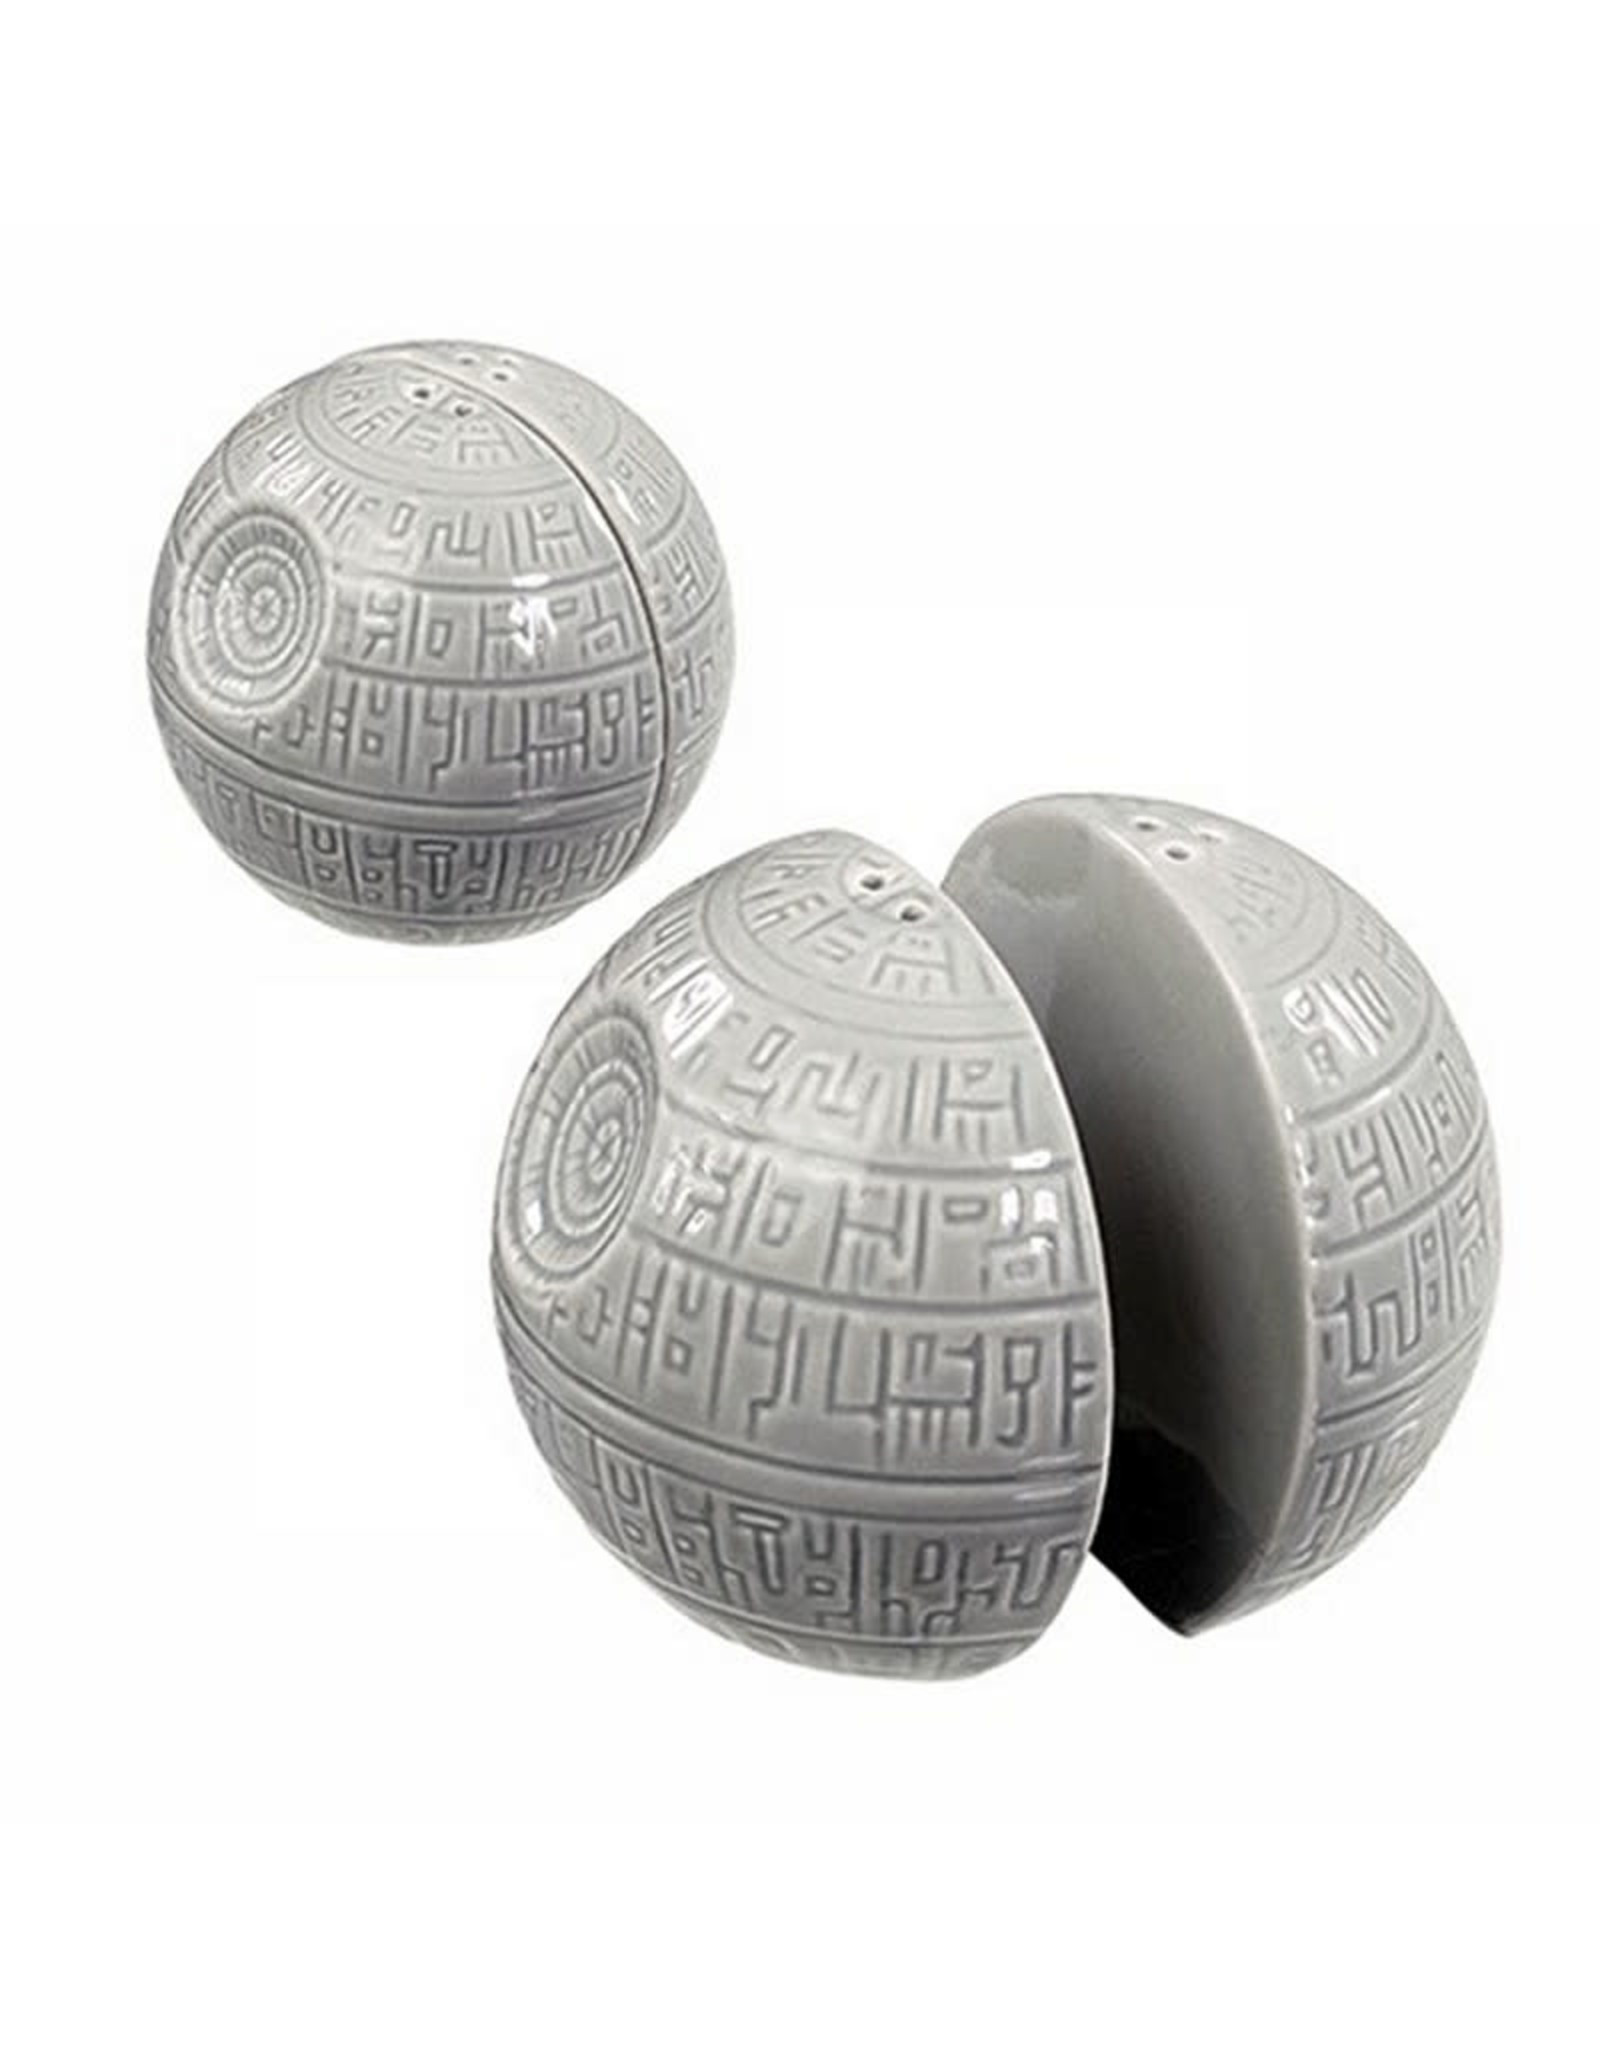 STAR WARS - Death Star - Salt and Papper Shakers